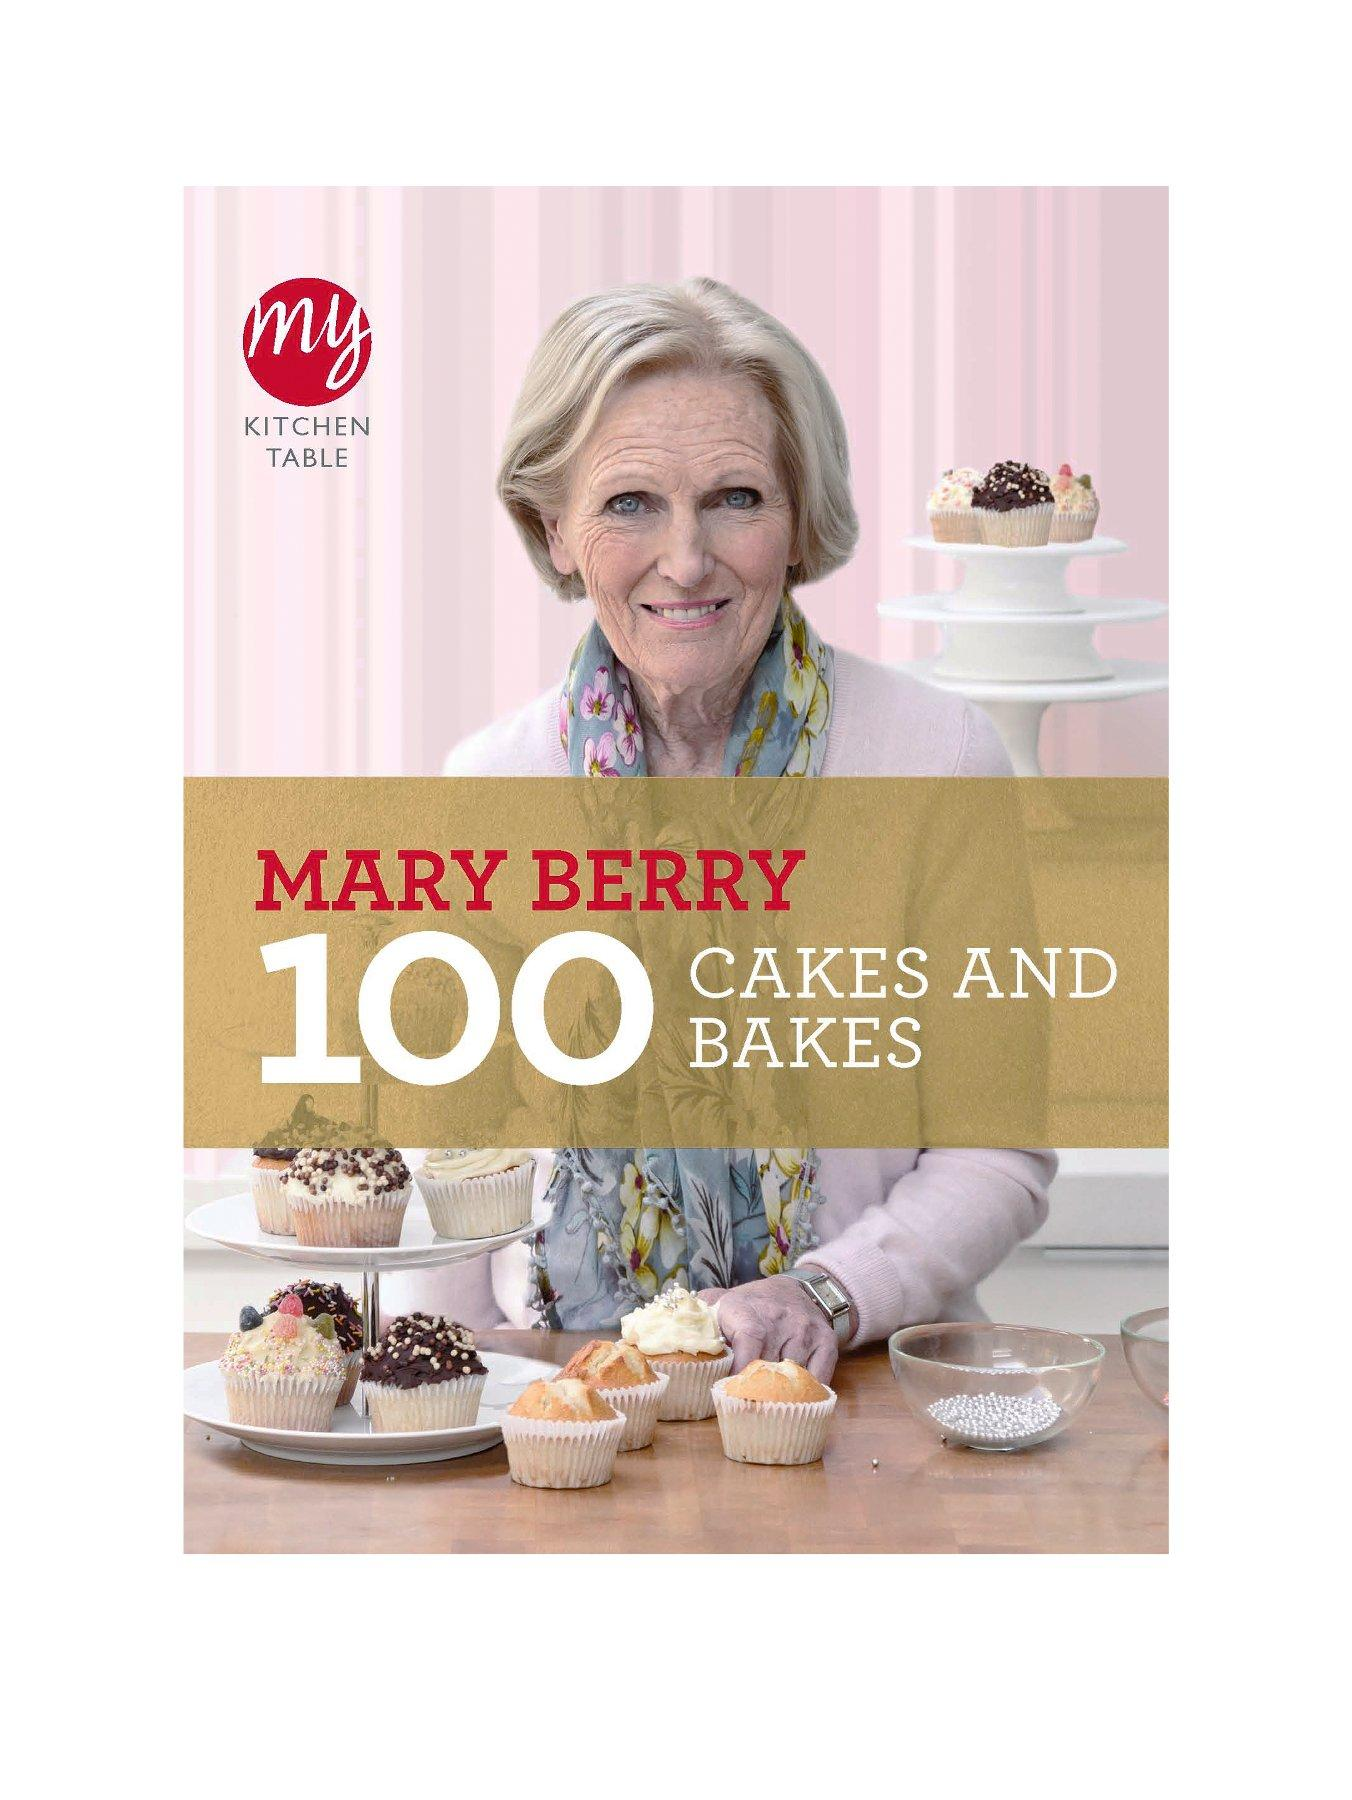 My Kitchen Table: 100 Cakes and Bakes - By Mary Berry (Paperback)